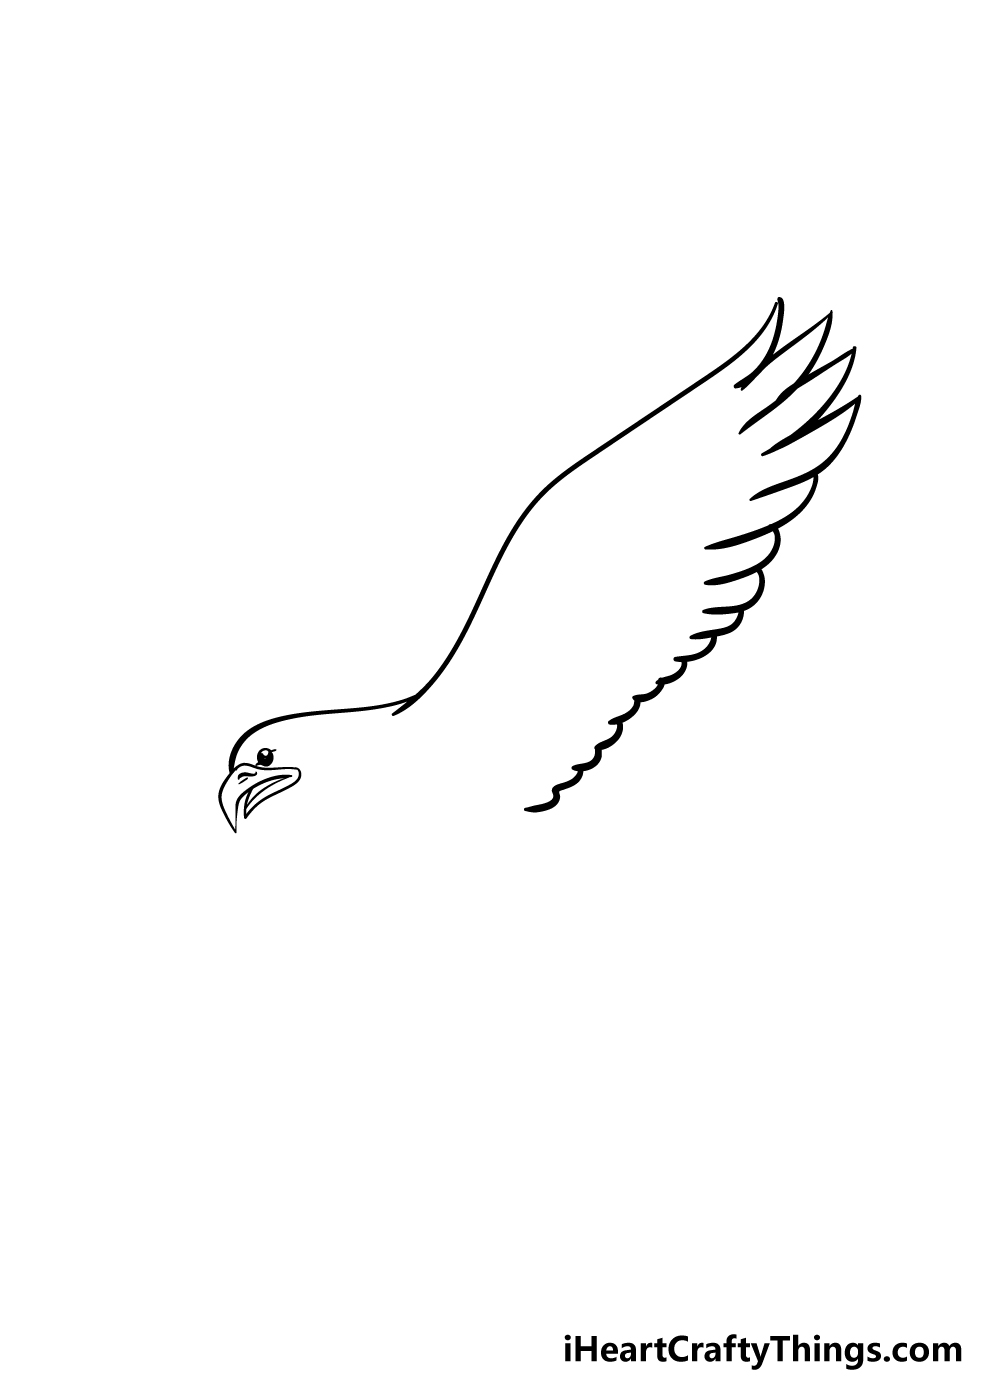 eagle drawing step 2